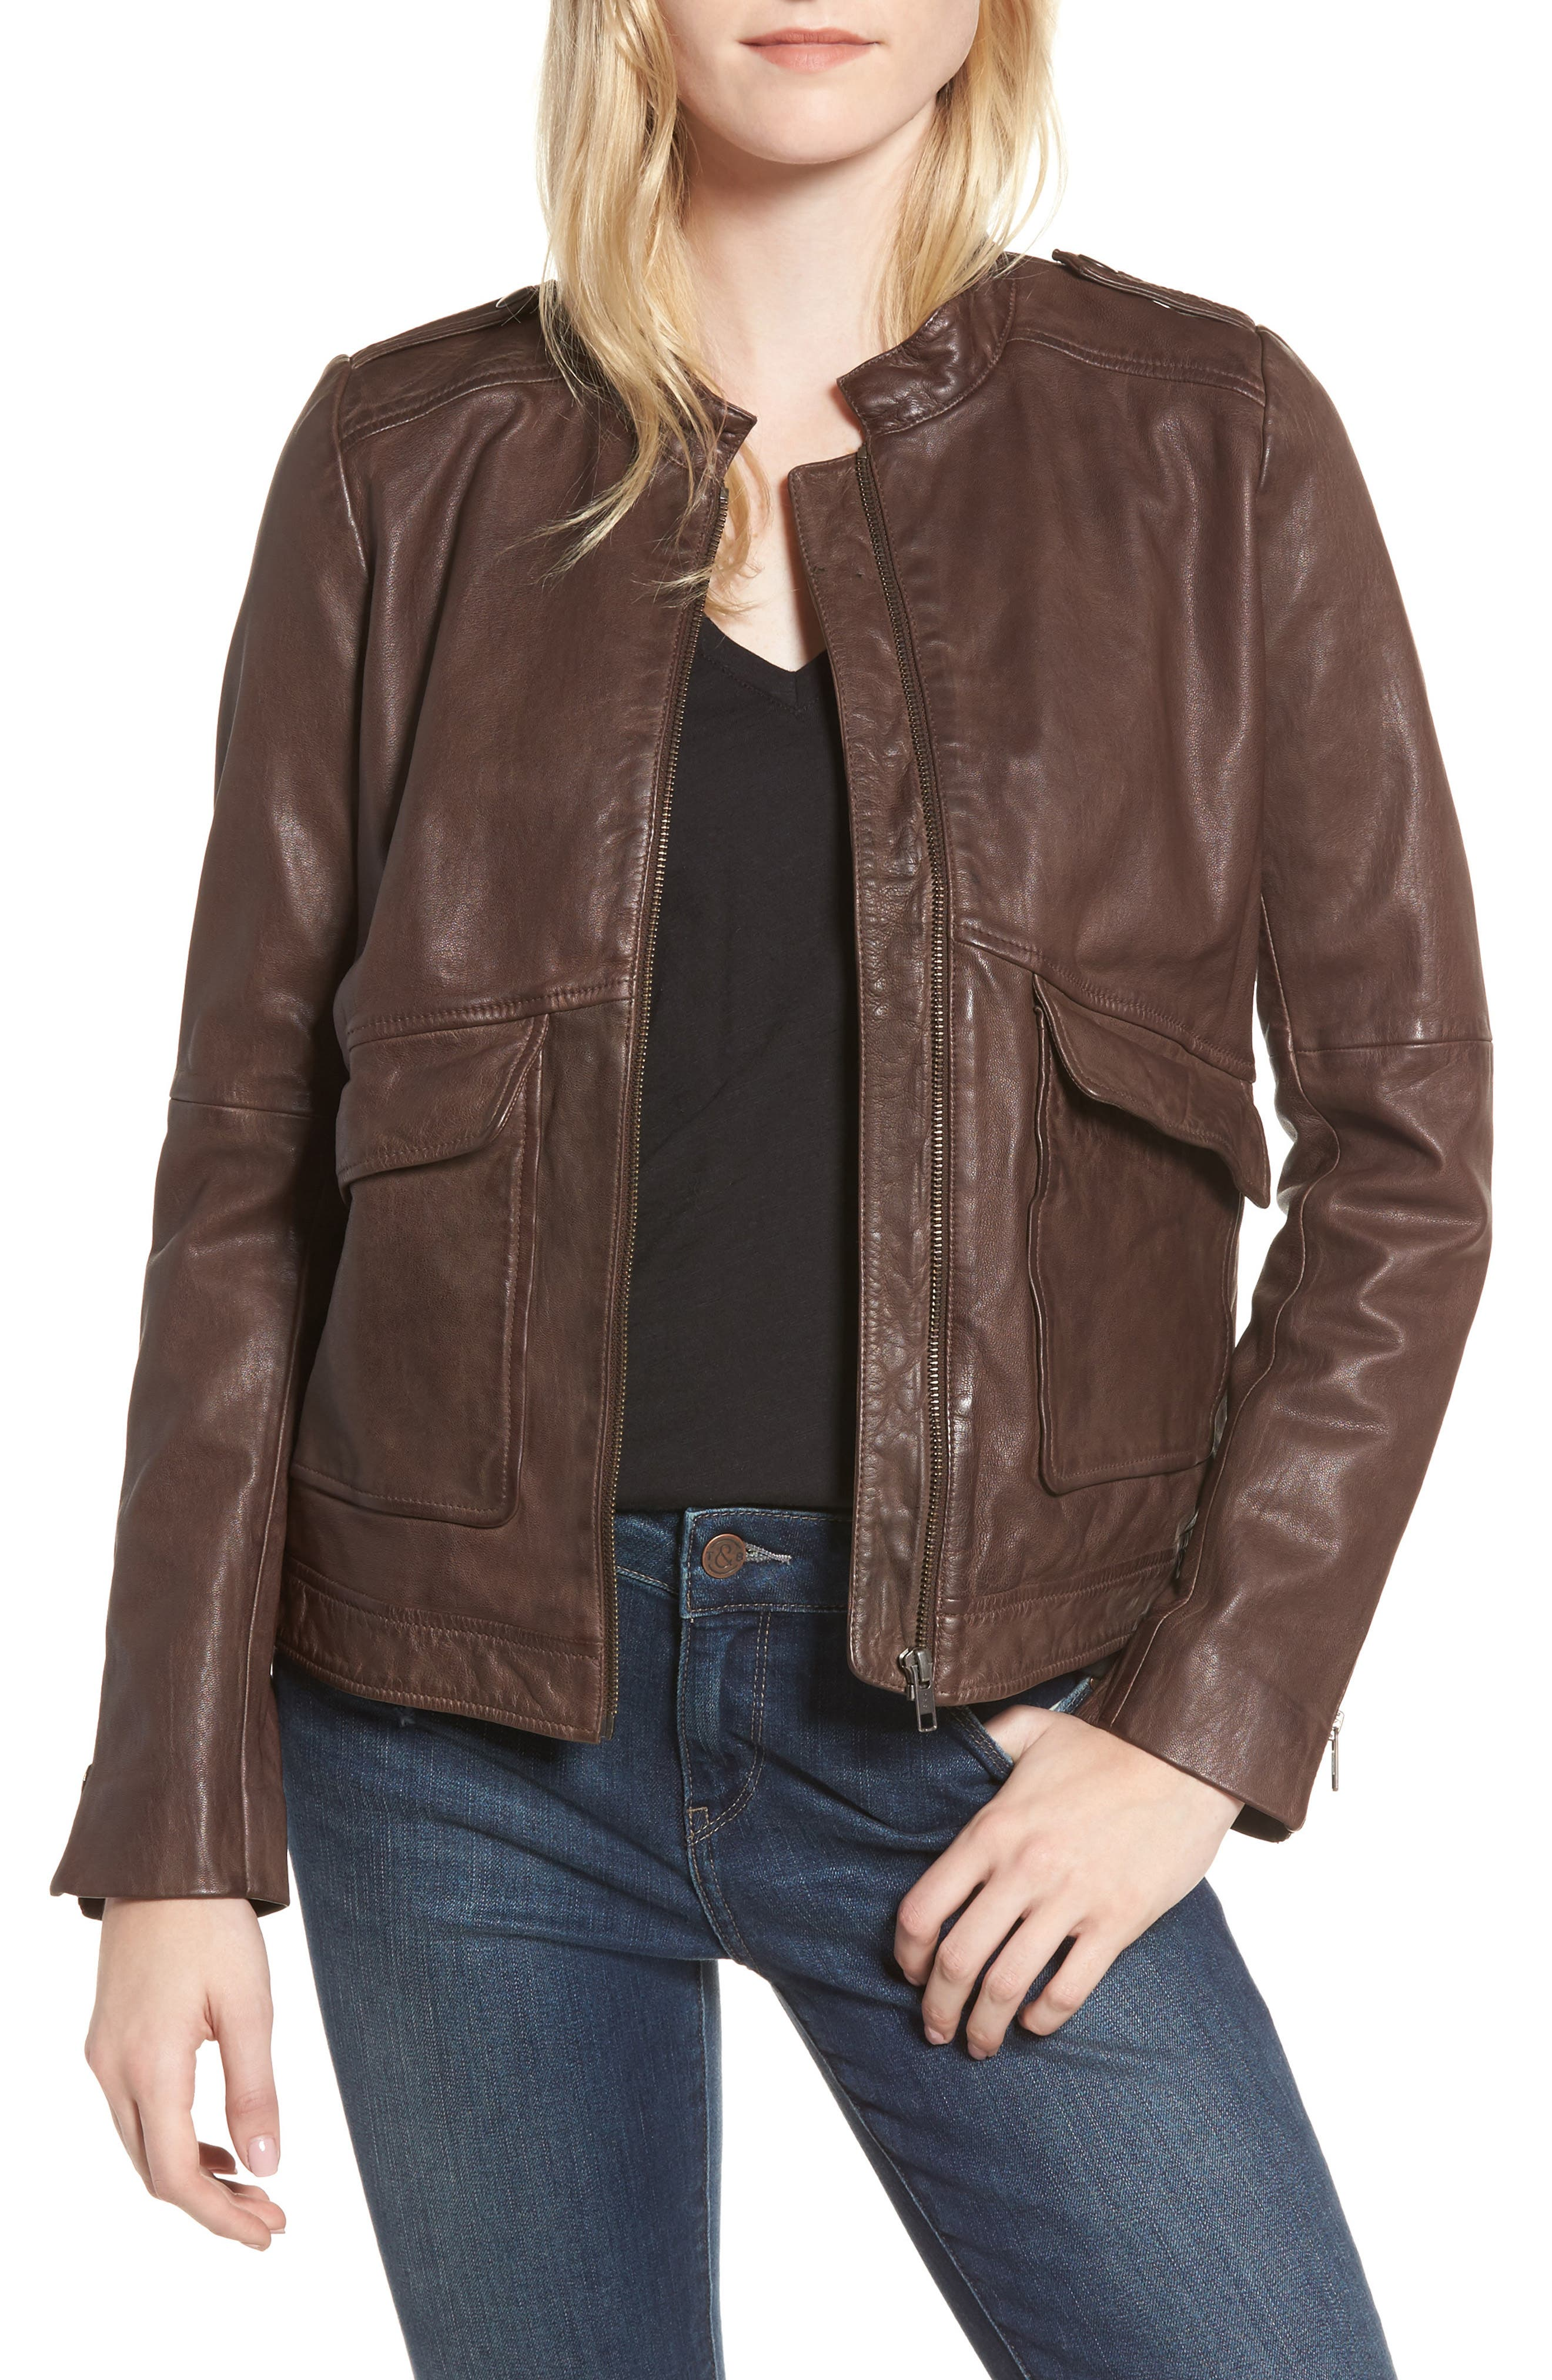 Main Image - Hinge Pocket Detail Leather Jacket